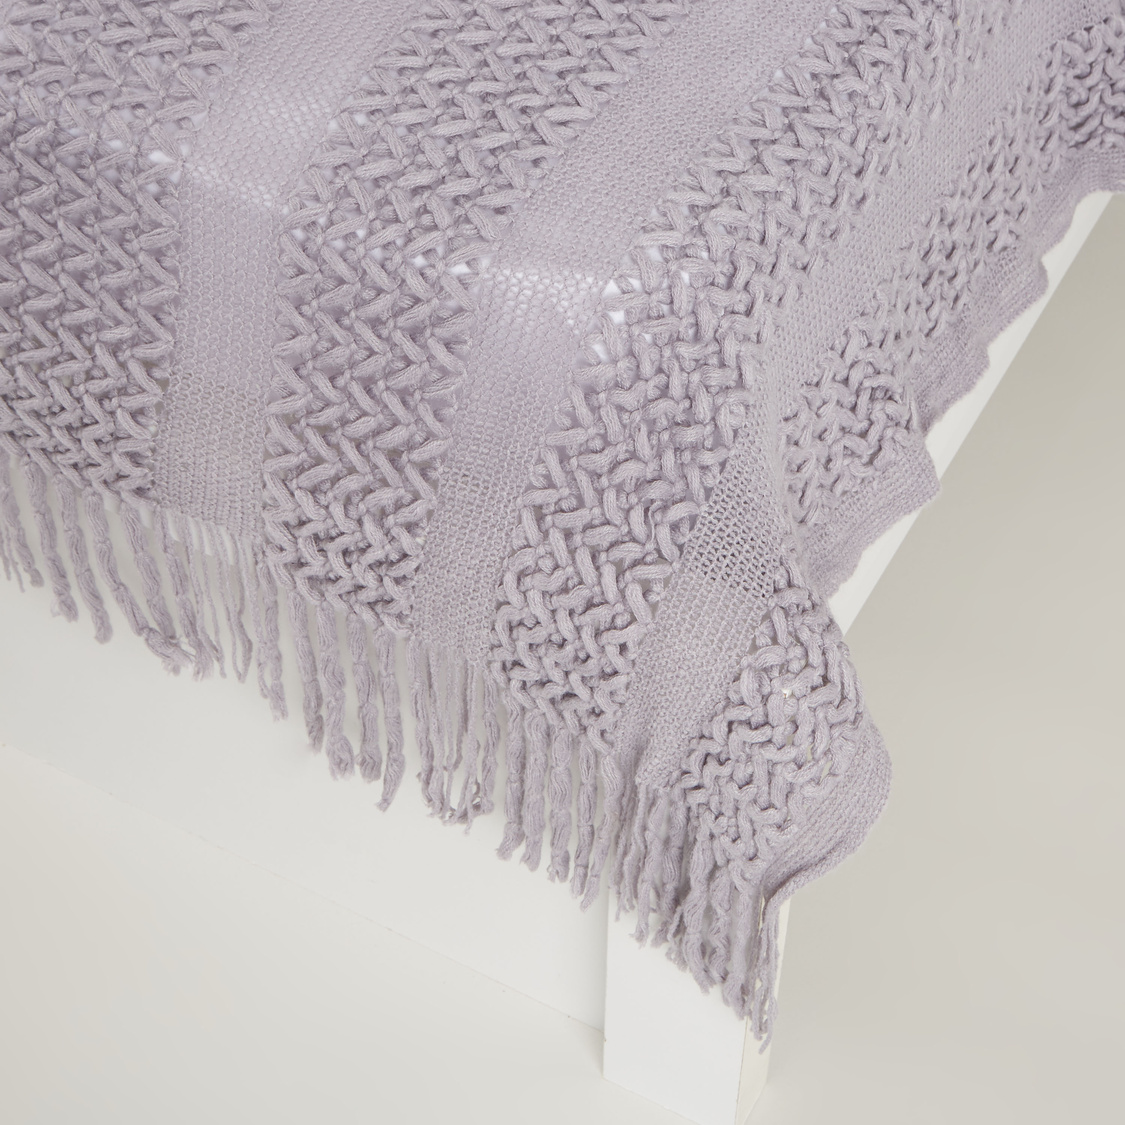 Woven Textured Throw with Tassels - 152x127 cms